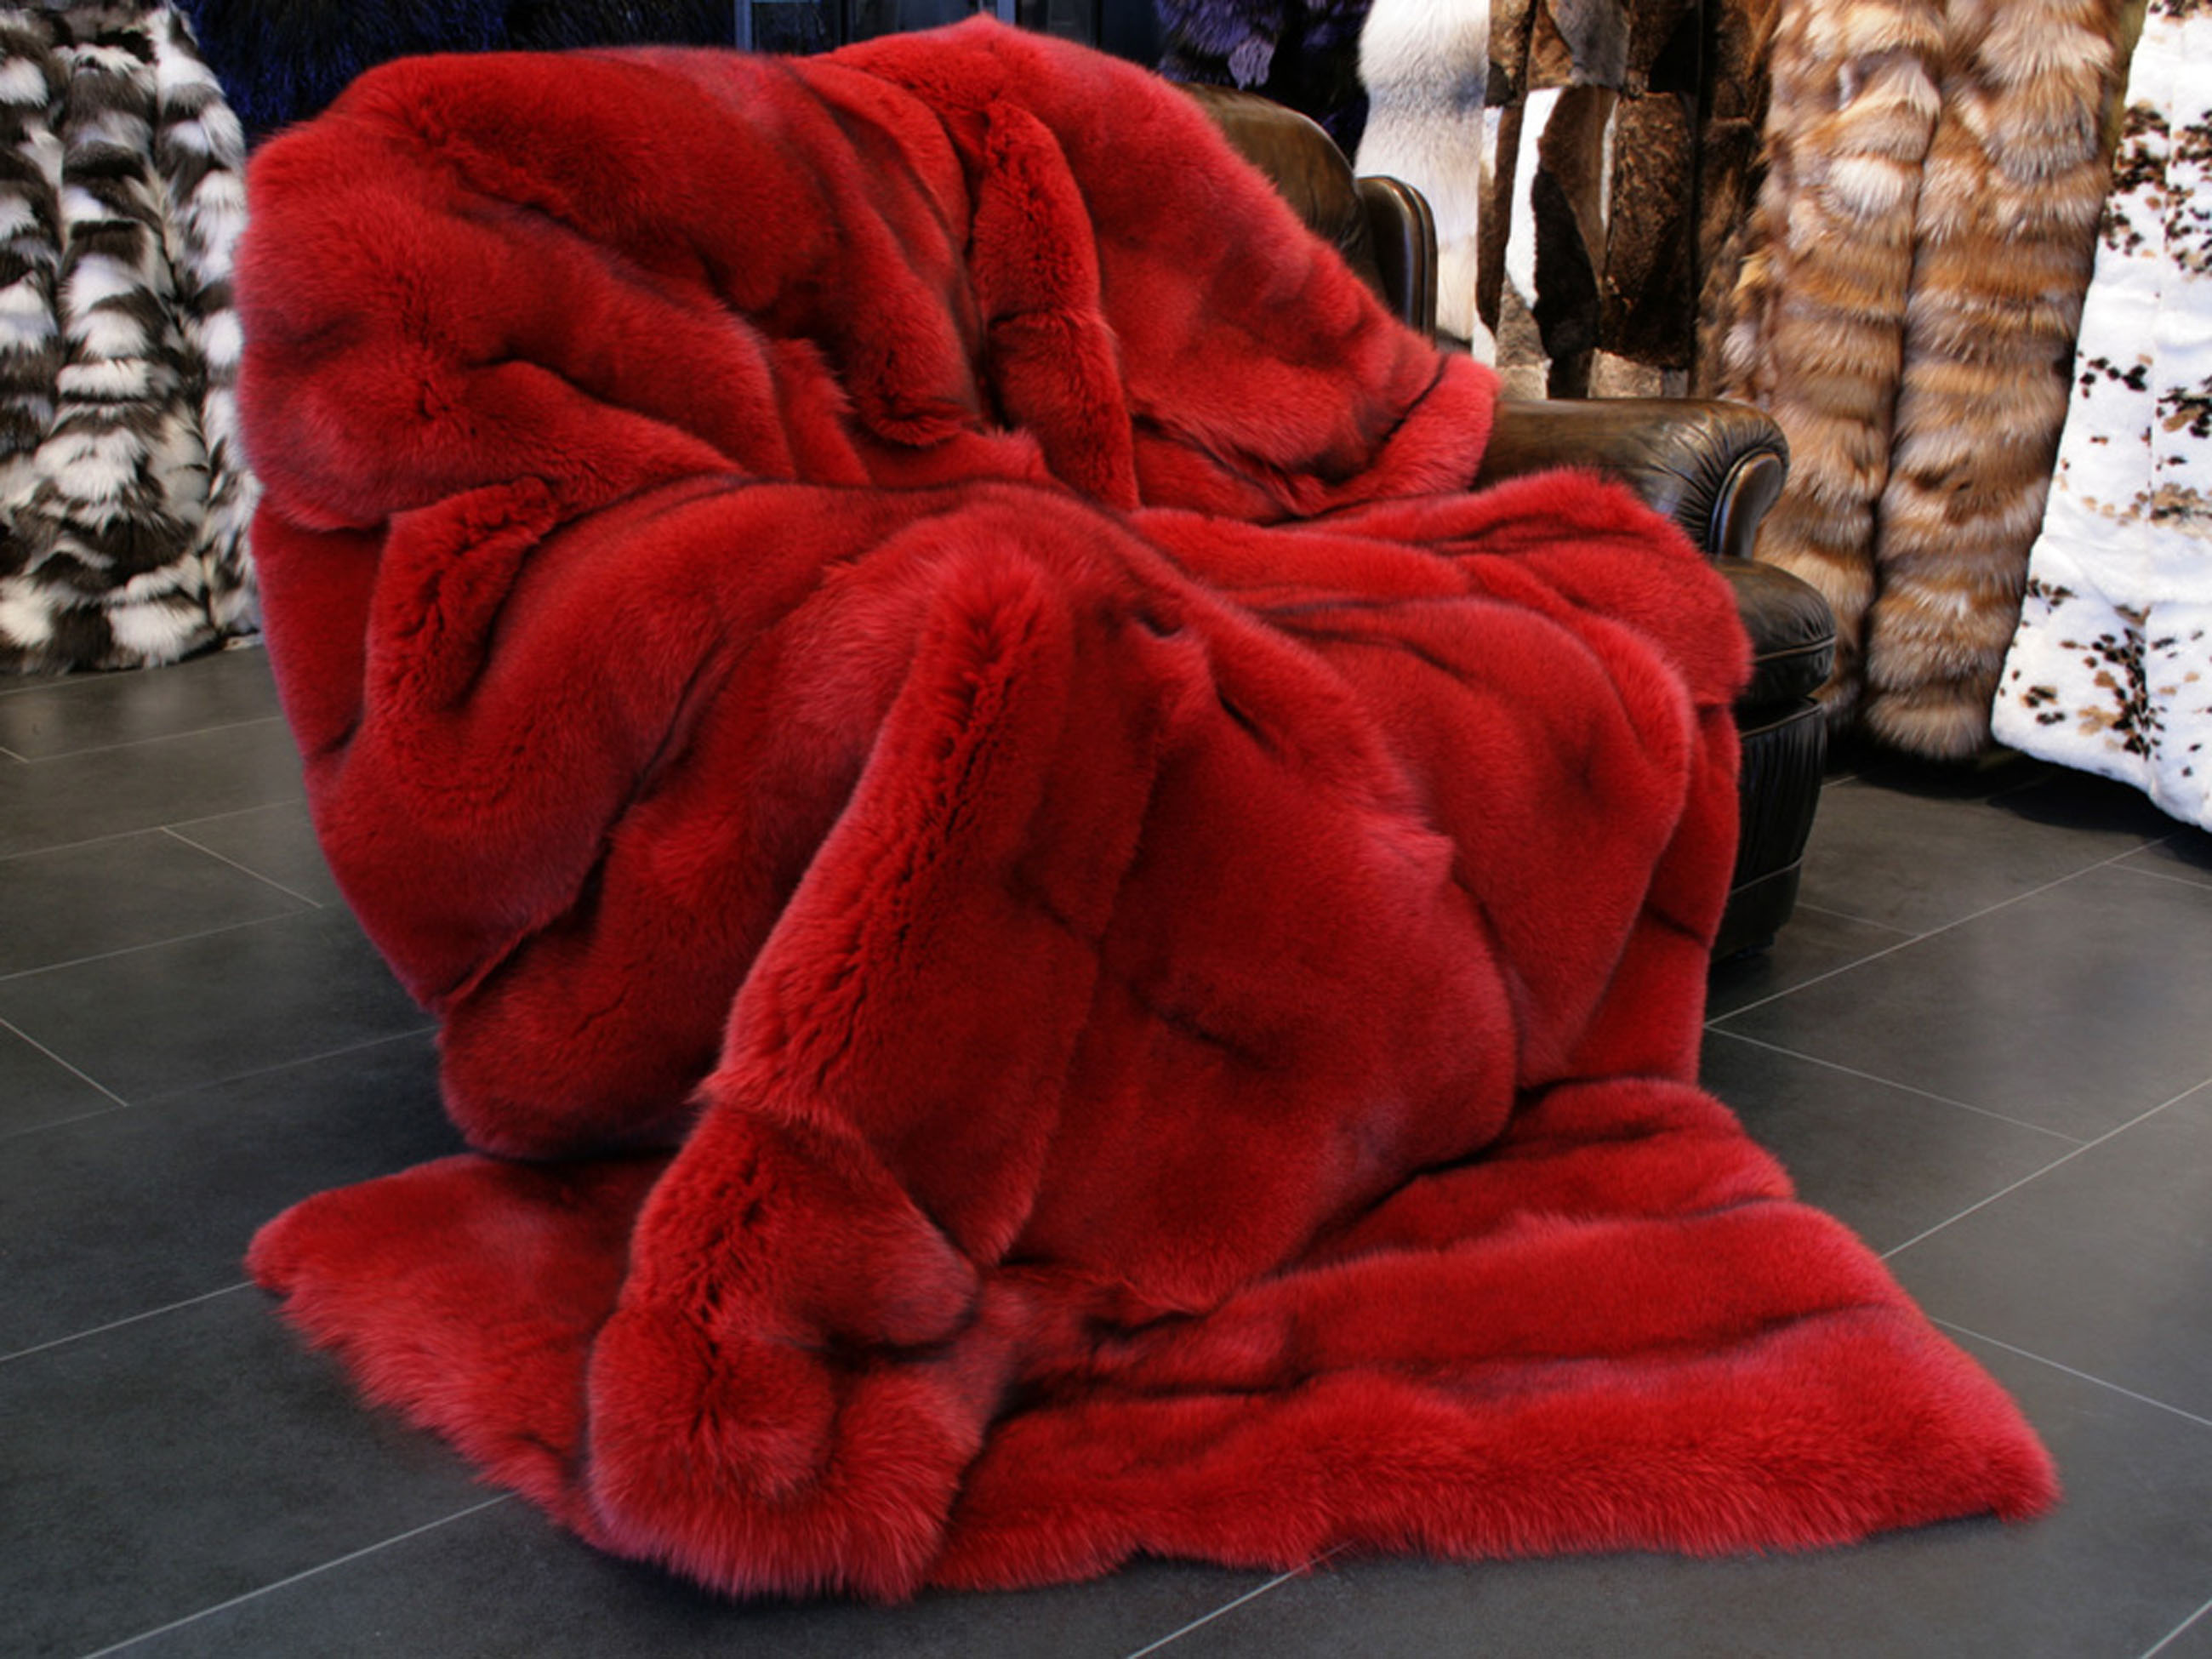 Cream Tibetan Mongolian Fur Qautro Hide Plate Throw Rug together with Corduroy Chair Bean Bag in addition Faux Leather Lounger Bean Bag furthermore Wrap Yourself In Softness With Sheepskin Bean Bag By Parker Wool also 8 Foot Giant Foam Filled Bean Bag like Lovesac. on fur bean bags